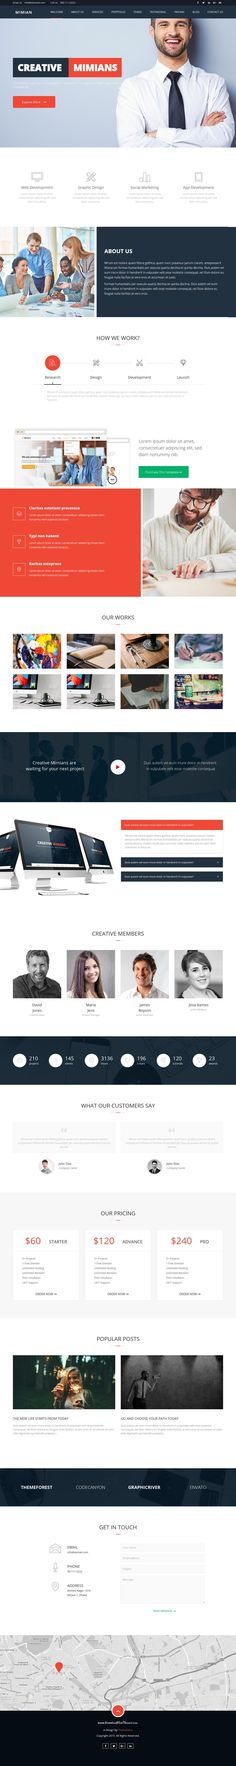 Mimian is a multi-purpose Bootstrap HTML template project that has carefully crafted by our top accomplished designers and front-end developers. The #template is a great choice for any kind of #business #websites.